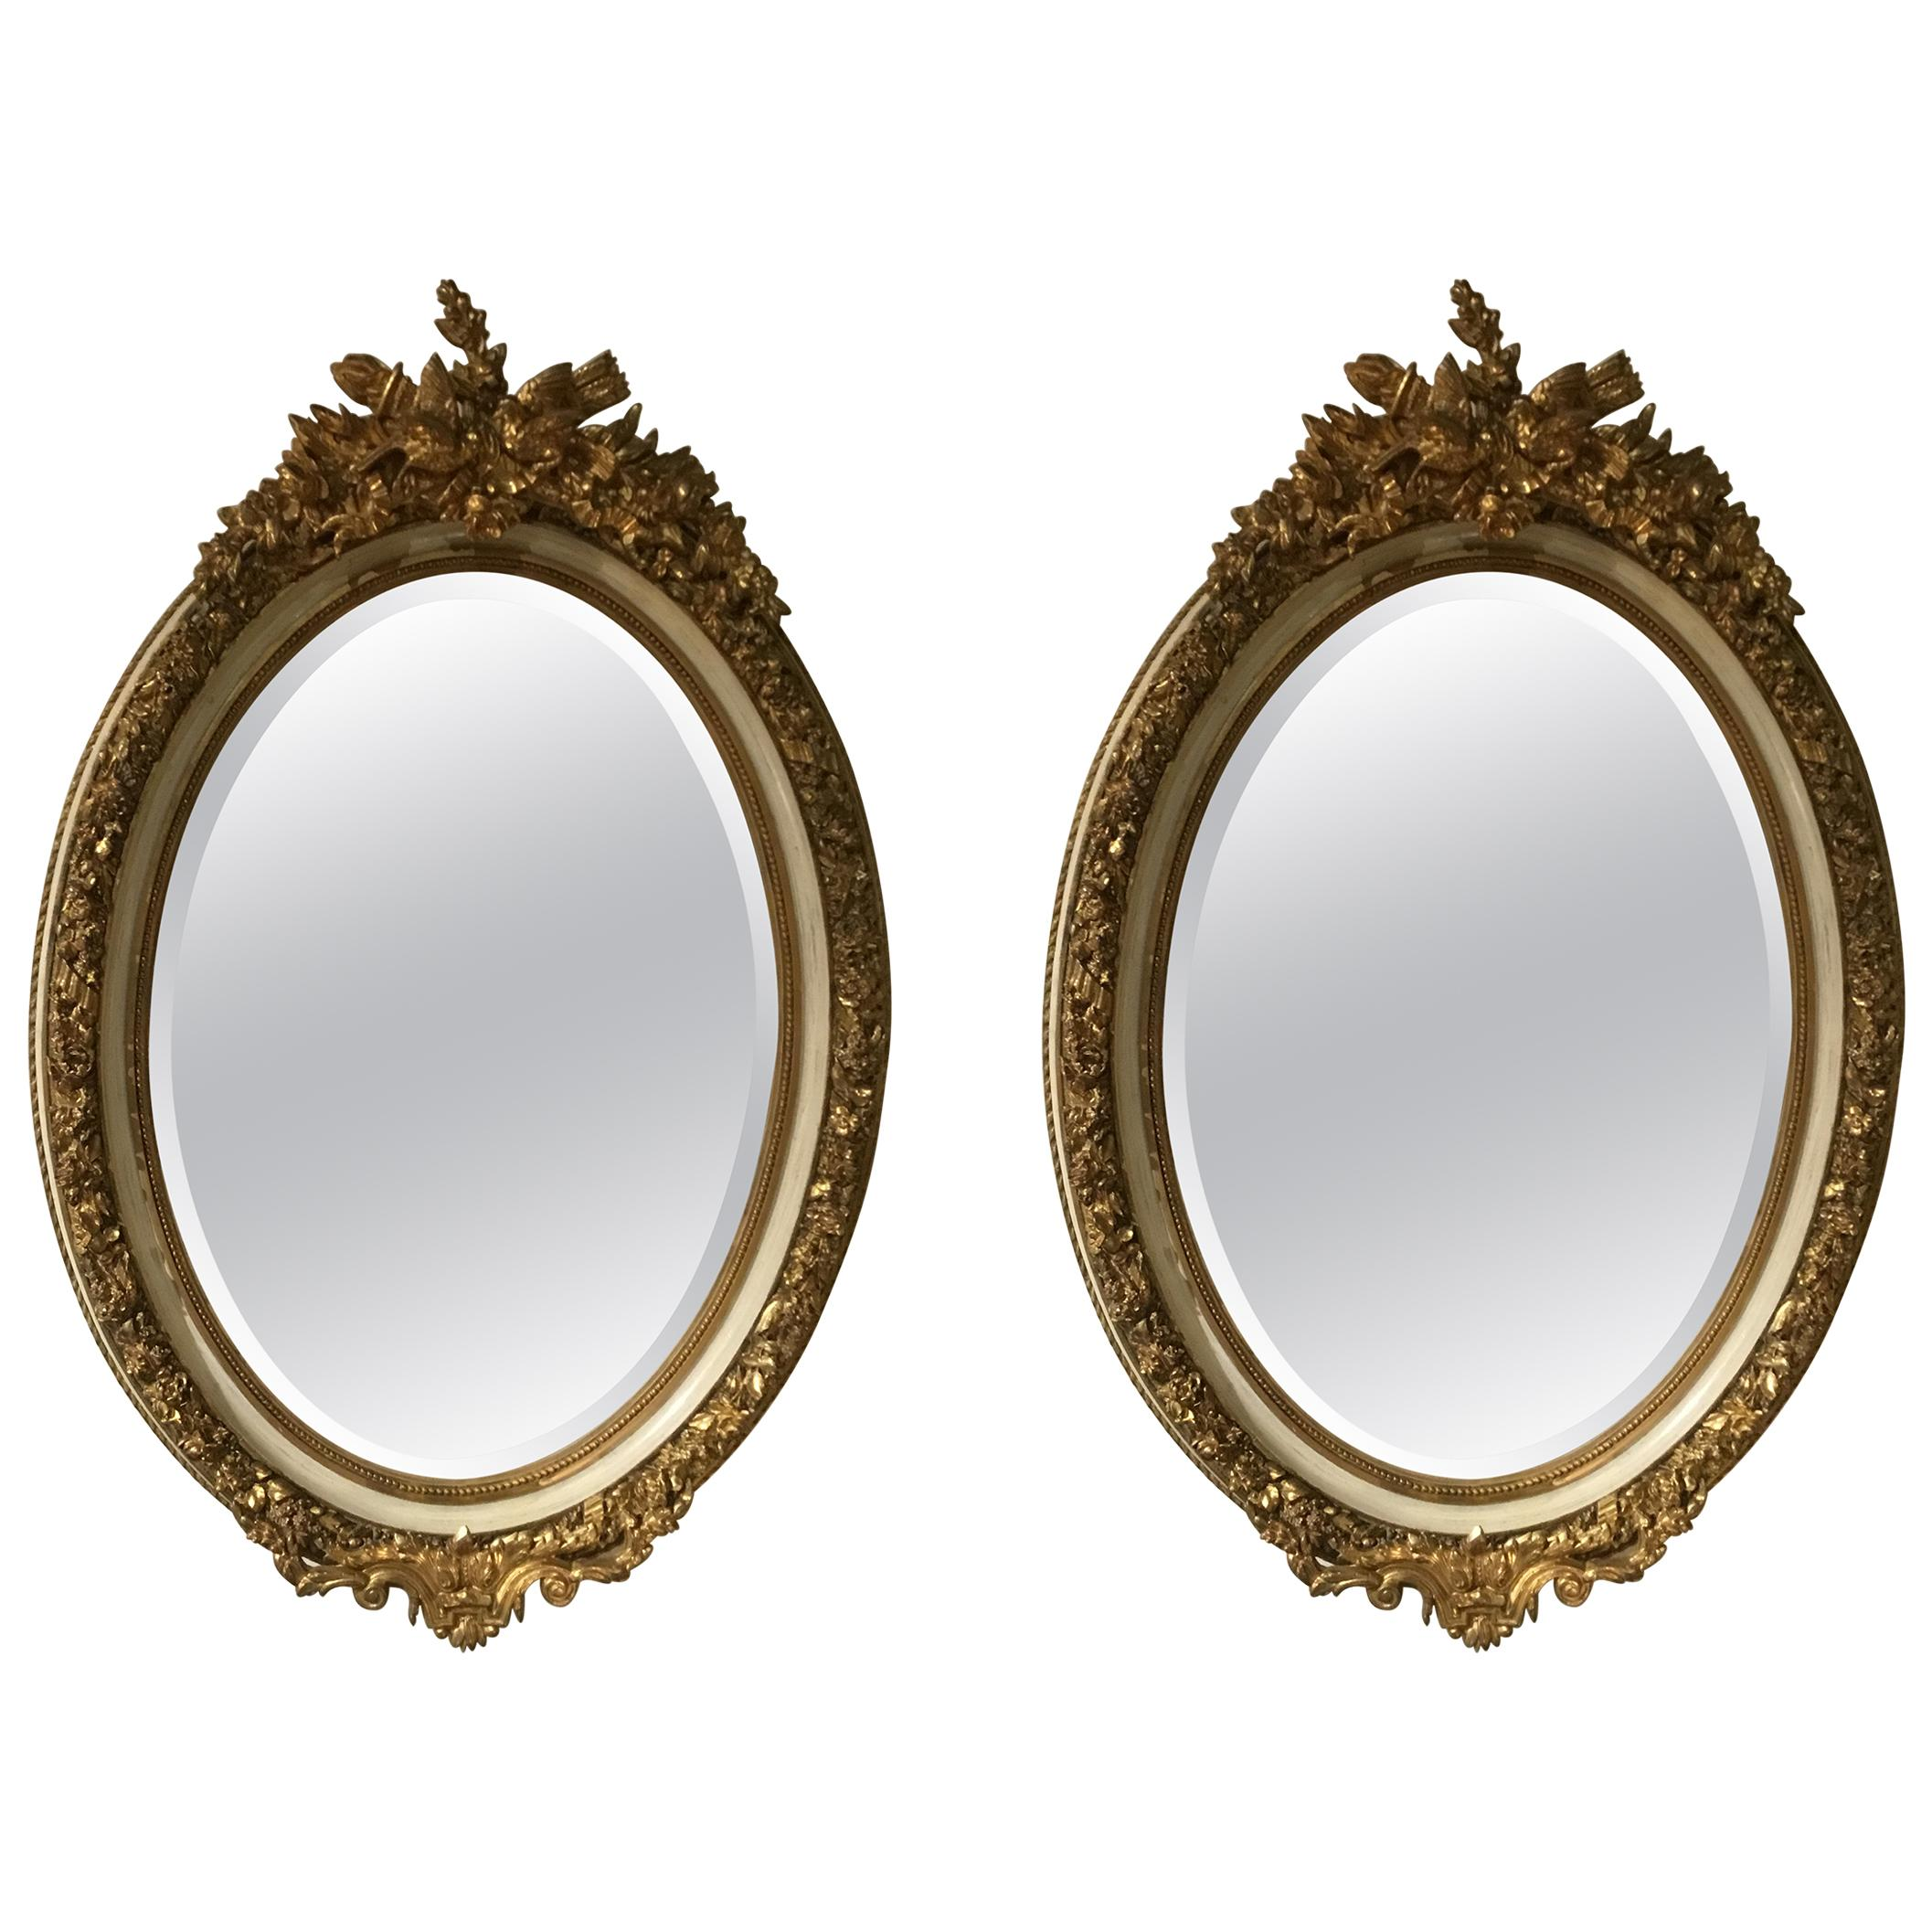 Pair of Parcel Paint and Parcel Gilt Beveled Oval Mirrors, with Bird Carvings